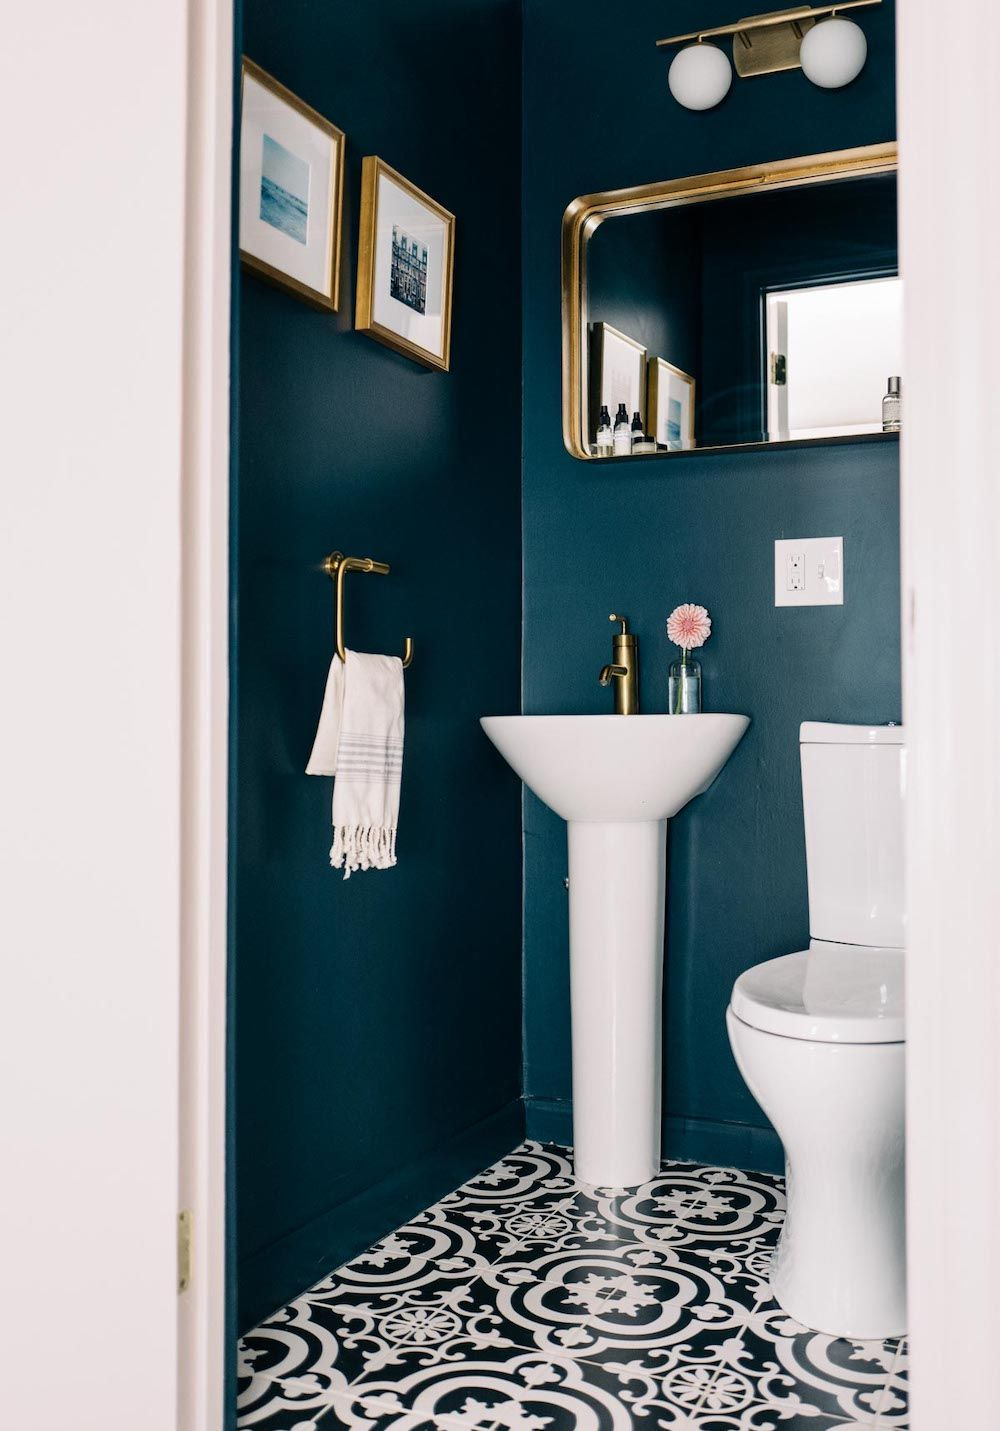 Hague Blue Powder Room With Gold Fittings Jess Ann Kirby Bathroom Inspiration Decor Blue Powder Rooms Powder Room Paint